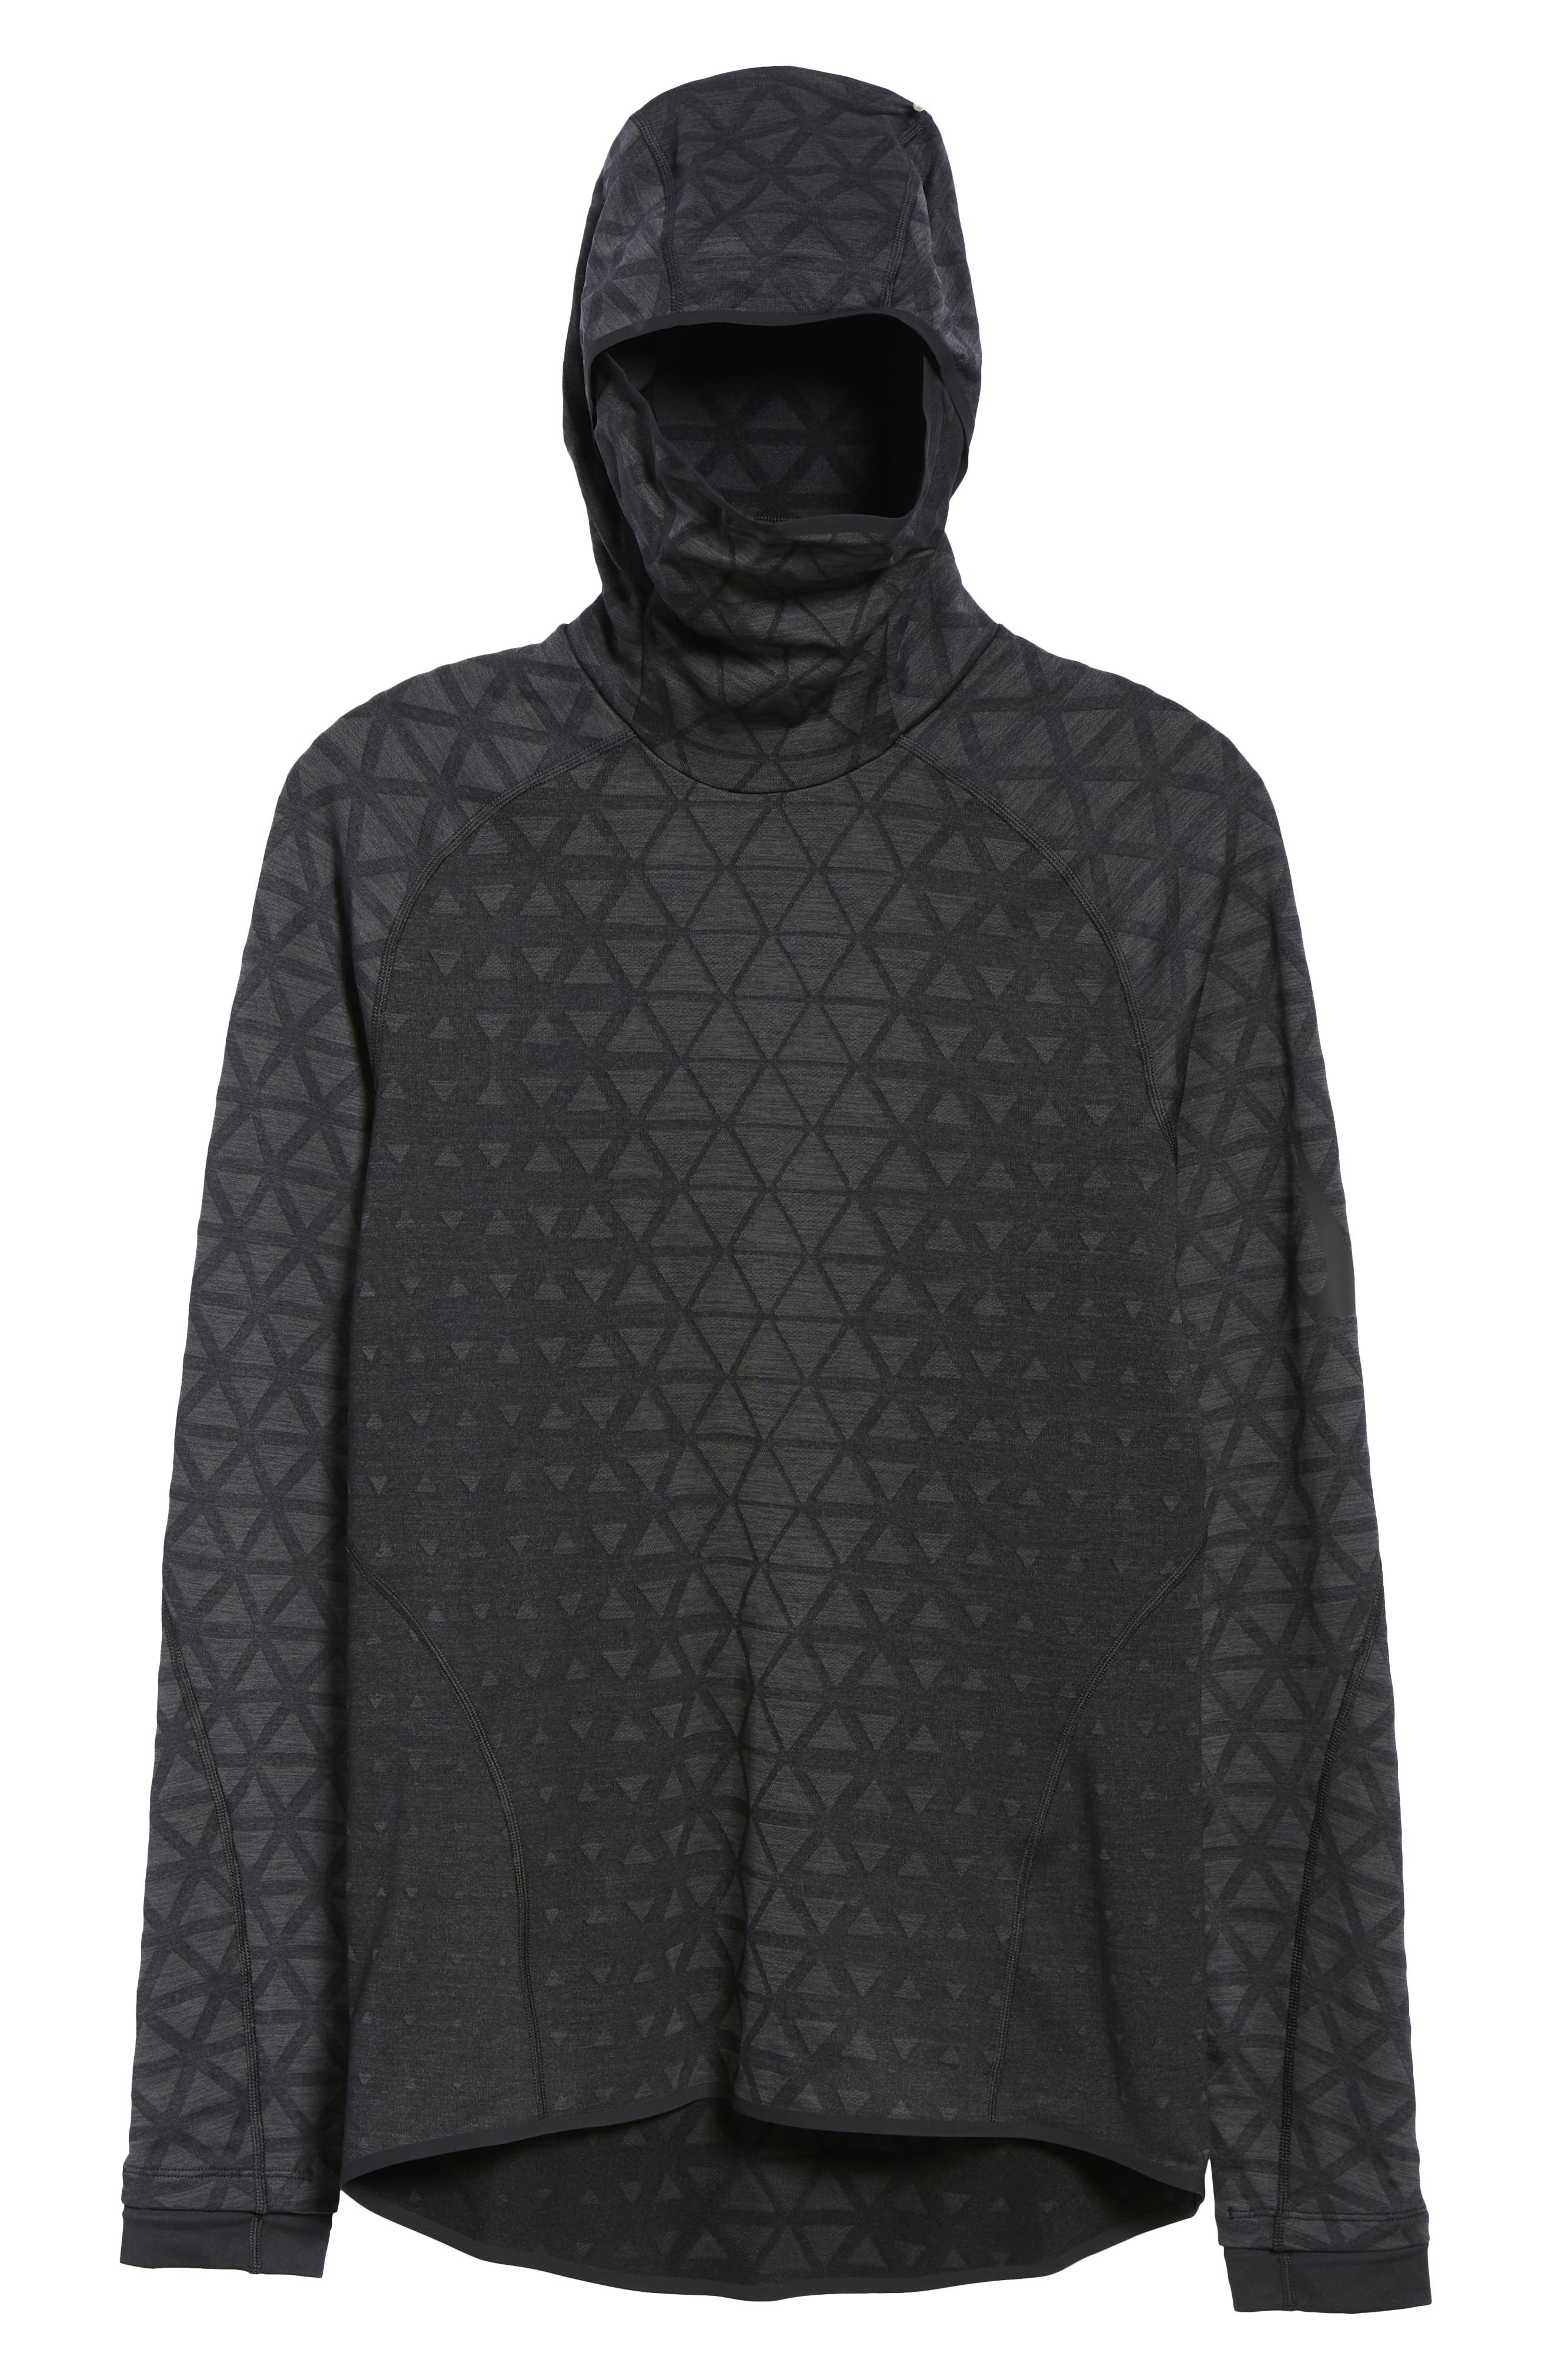 Therma Sphere Hooded Training Top,                             Alternate thumbnail 6, color,                             BLACK/ ANTHRACITE/ ANTHRACITE